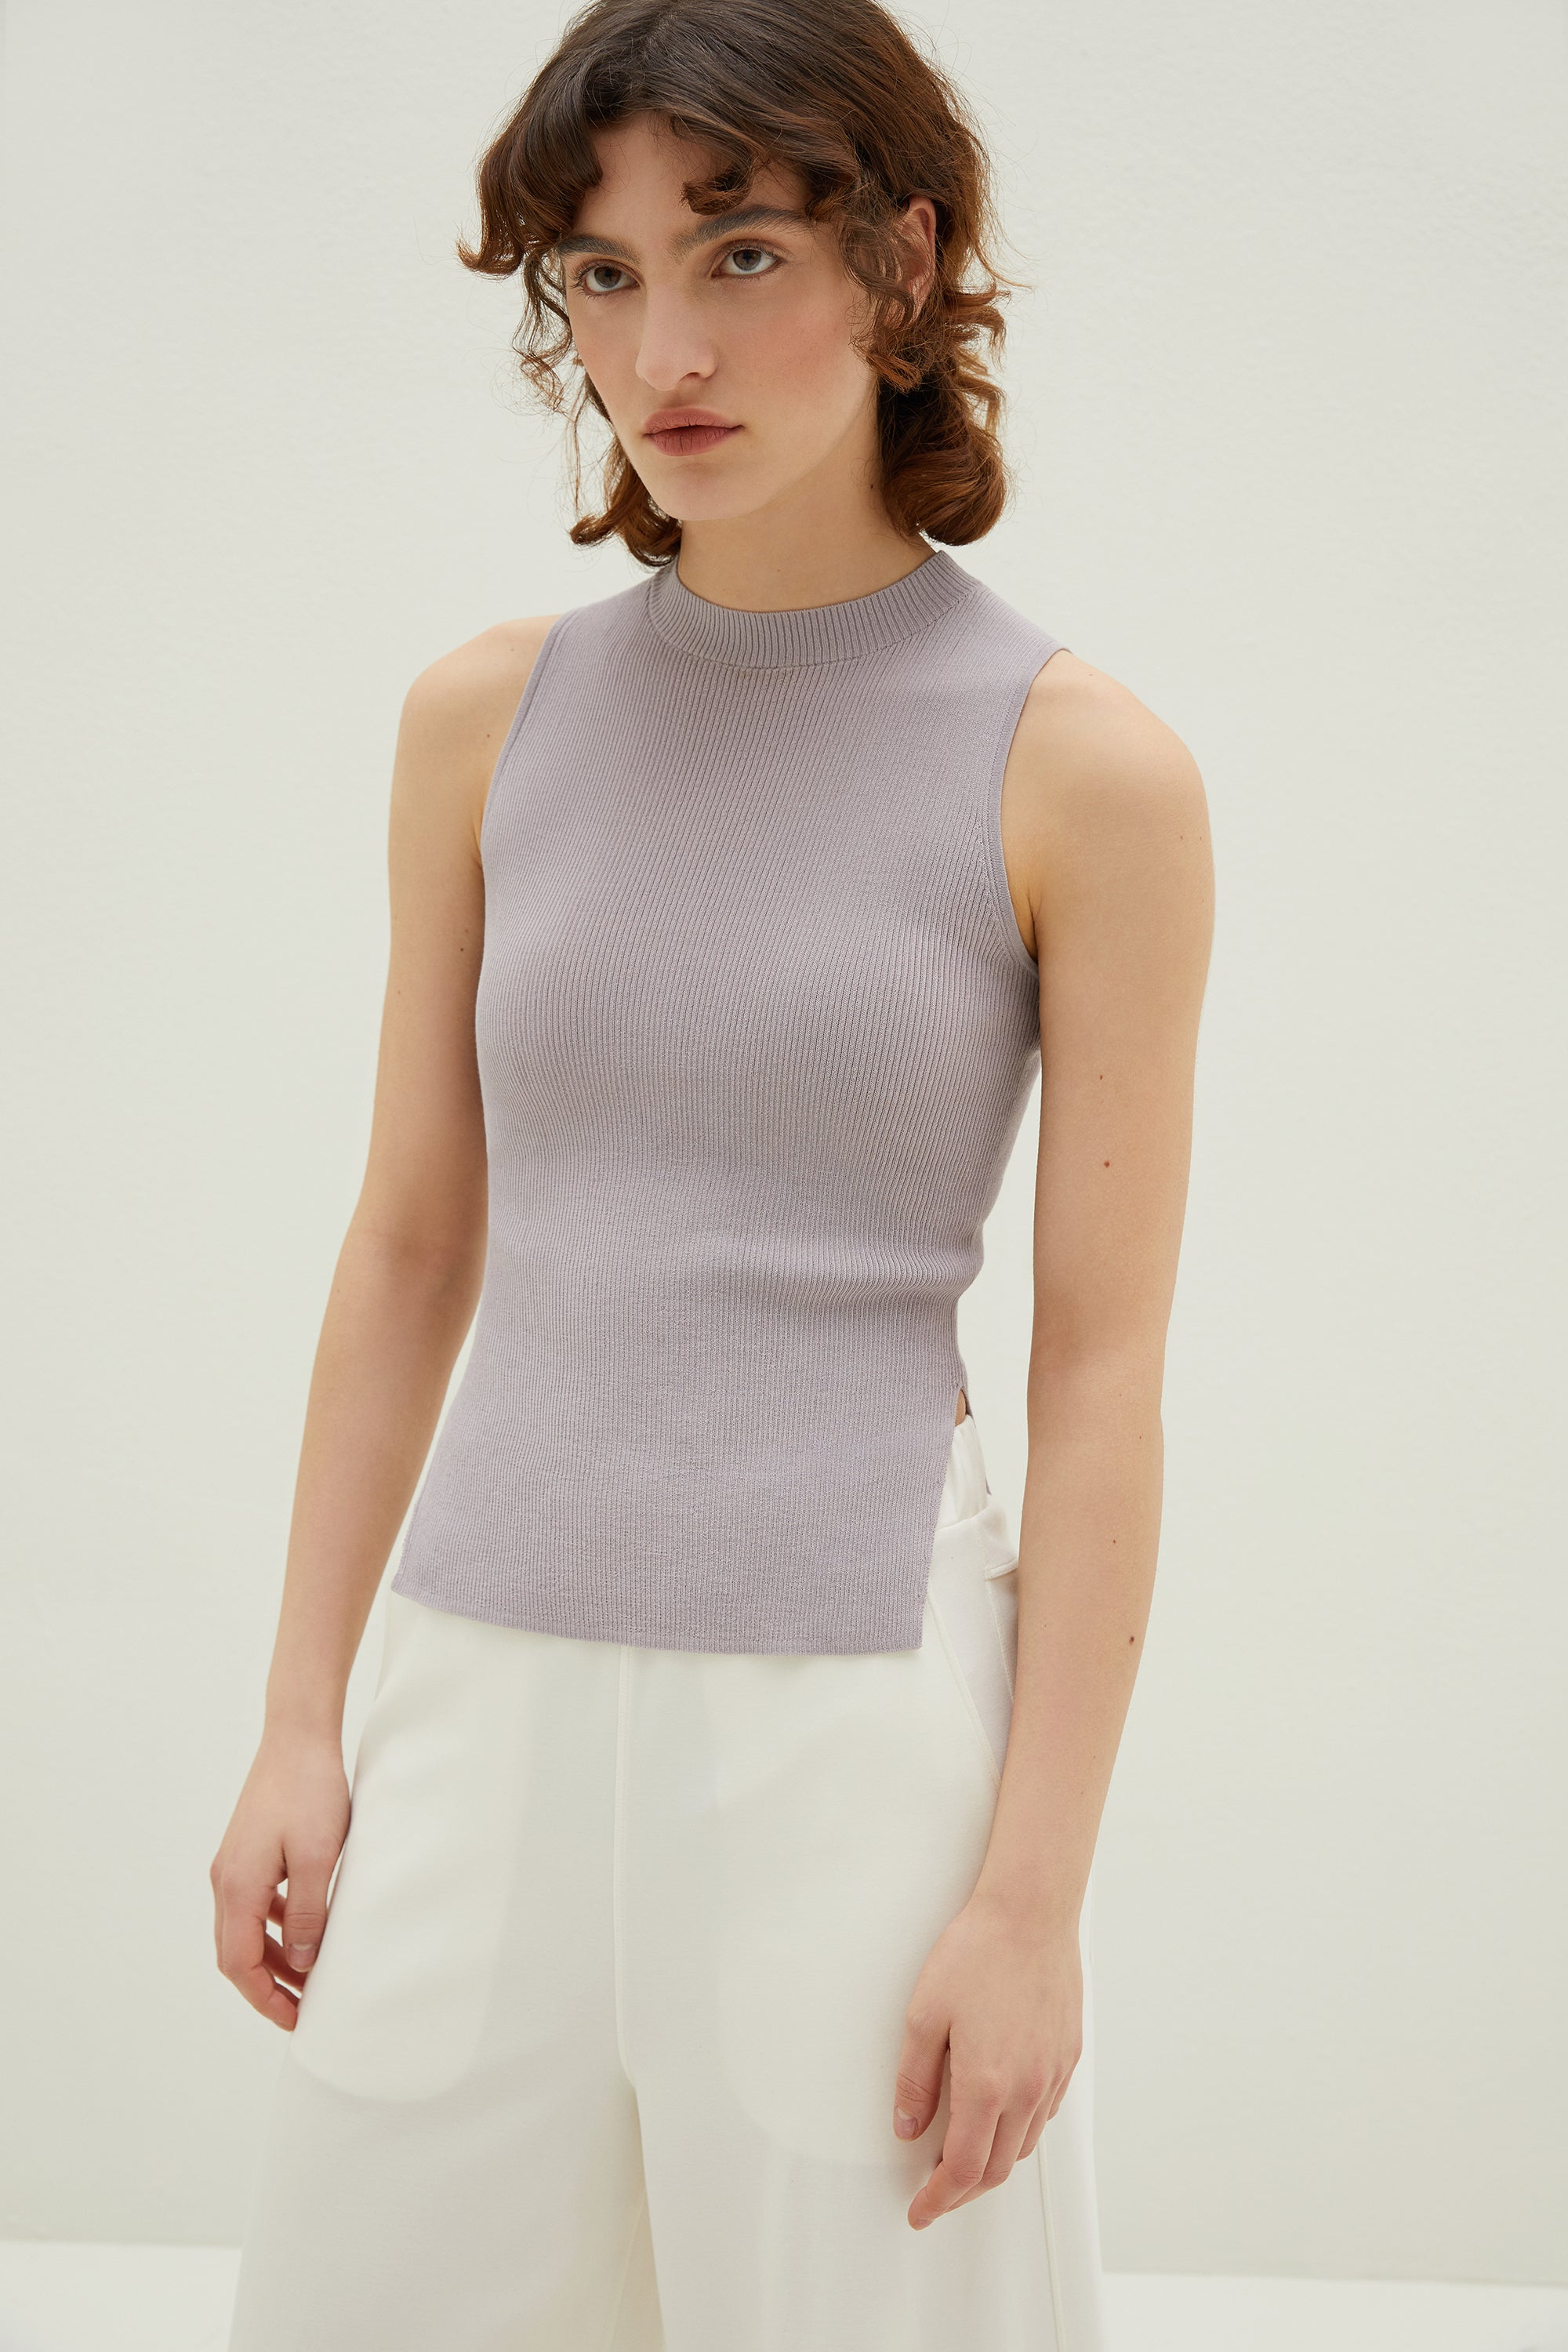 Model wearing NEIWAI's Knitted Sleeveless Mock Neck Tank Top in Serenity.